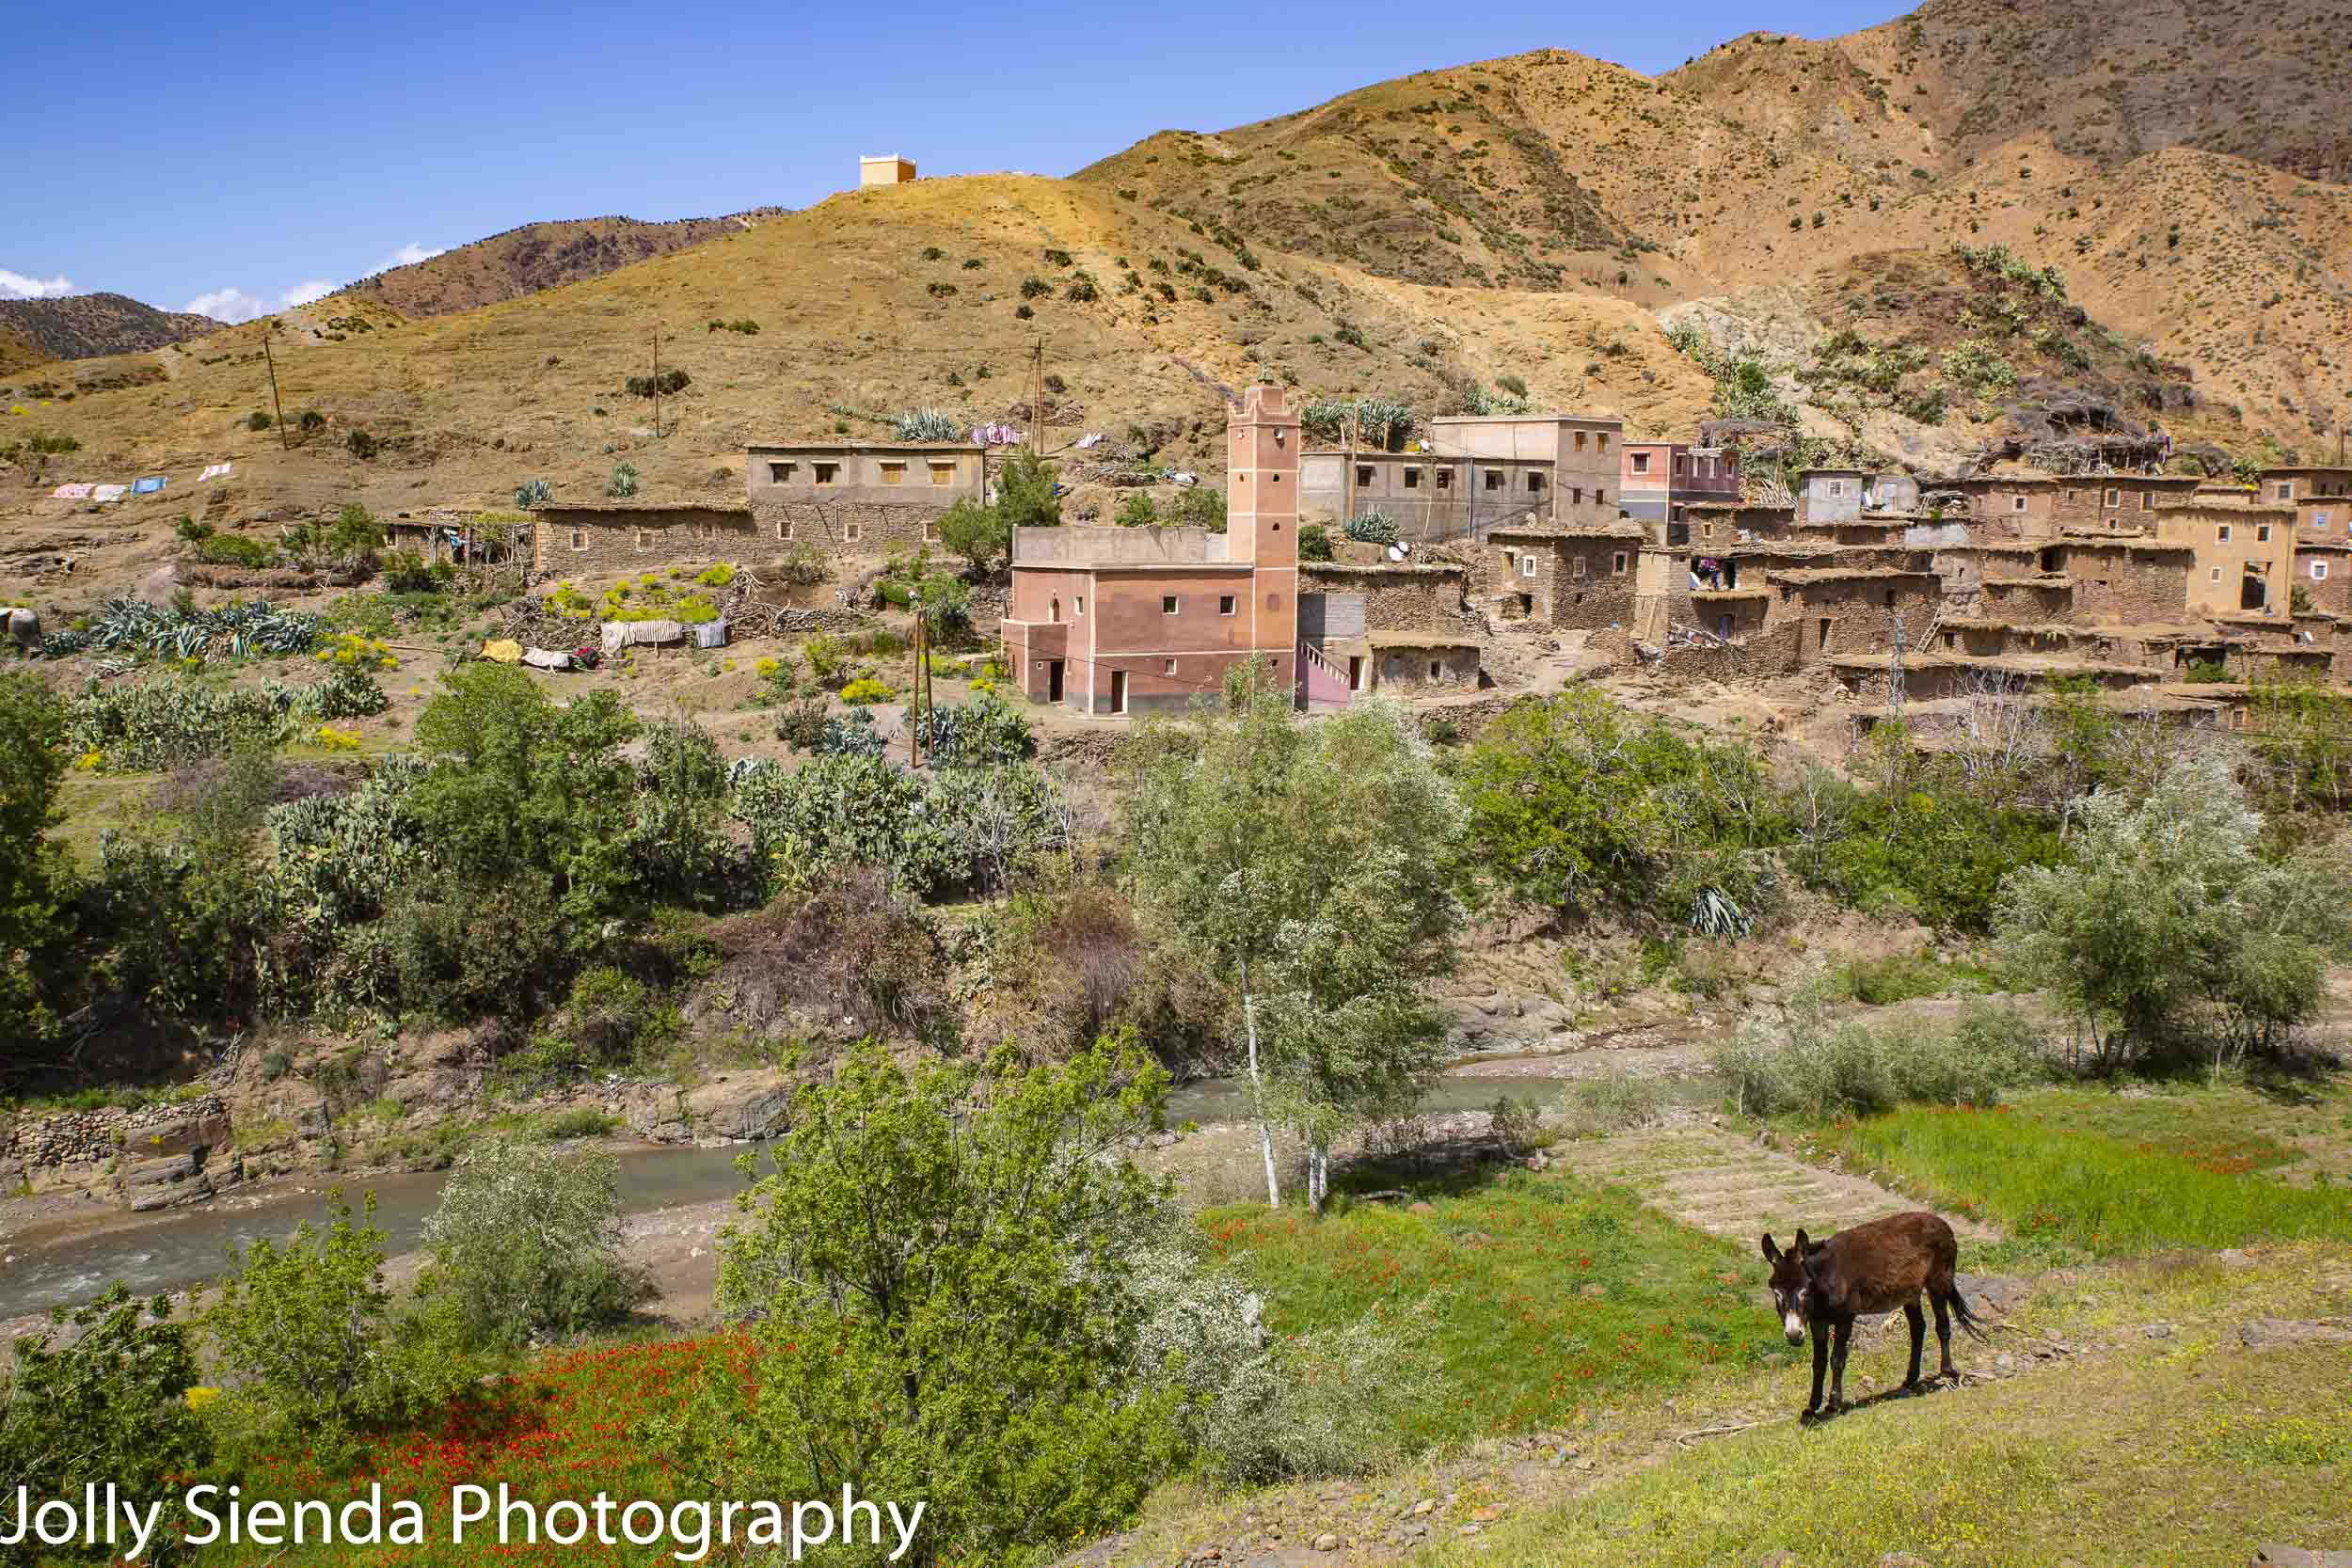 High Atlas Mountain village and a donkey